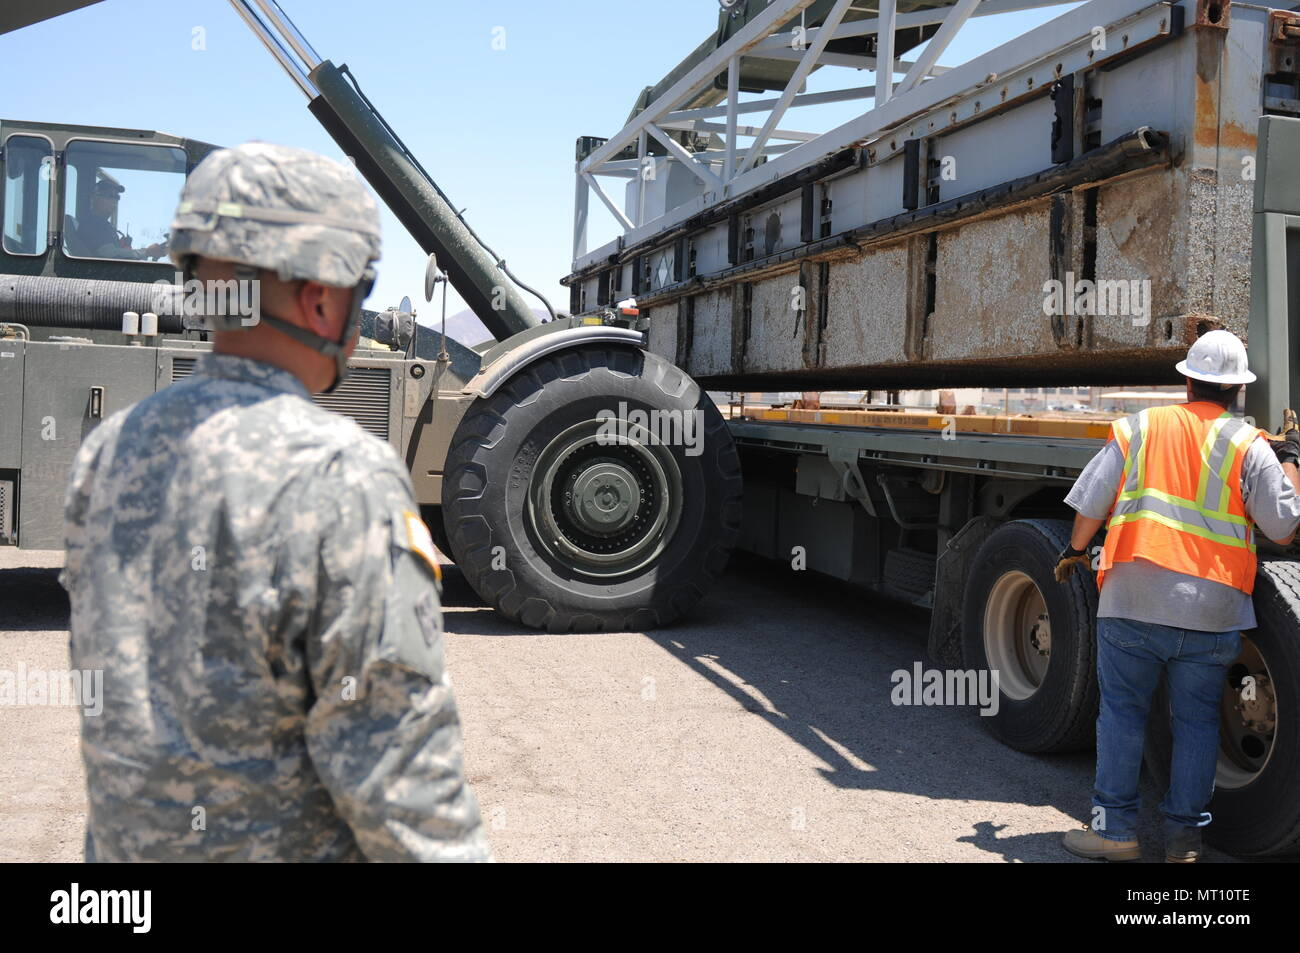 Sgt. Michael Tovar of the 250th Transportation Company out of El Monte, Calif., observes as section a Modular Causeway System (MCS) are loaded onto his M915 truck at the Marine Corps Logistics Base in Yermo, Calif., during Big LOTS West 17. - Stock Image